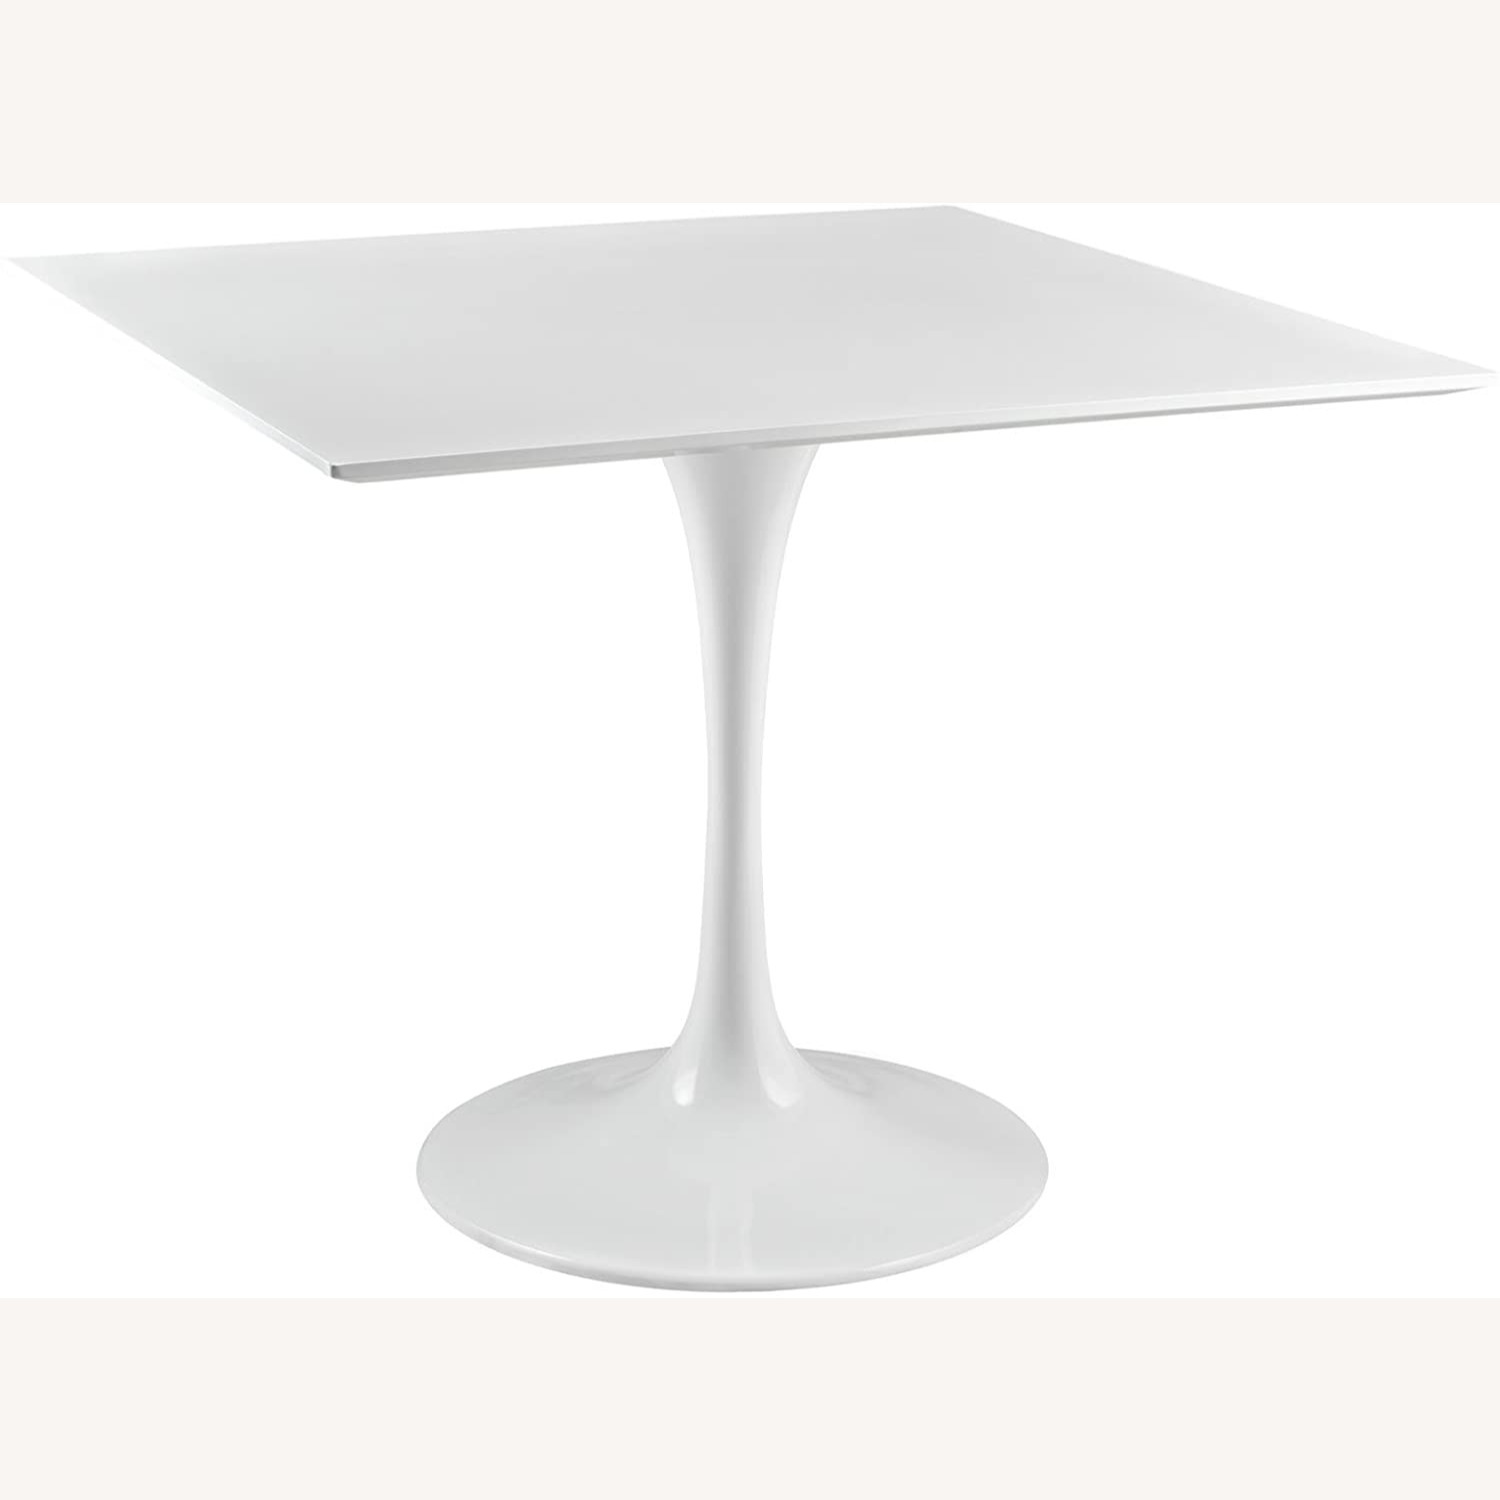 """Modern 36"""" Square Dining Table In White Wood Top - image-1"""